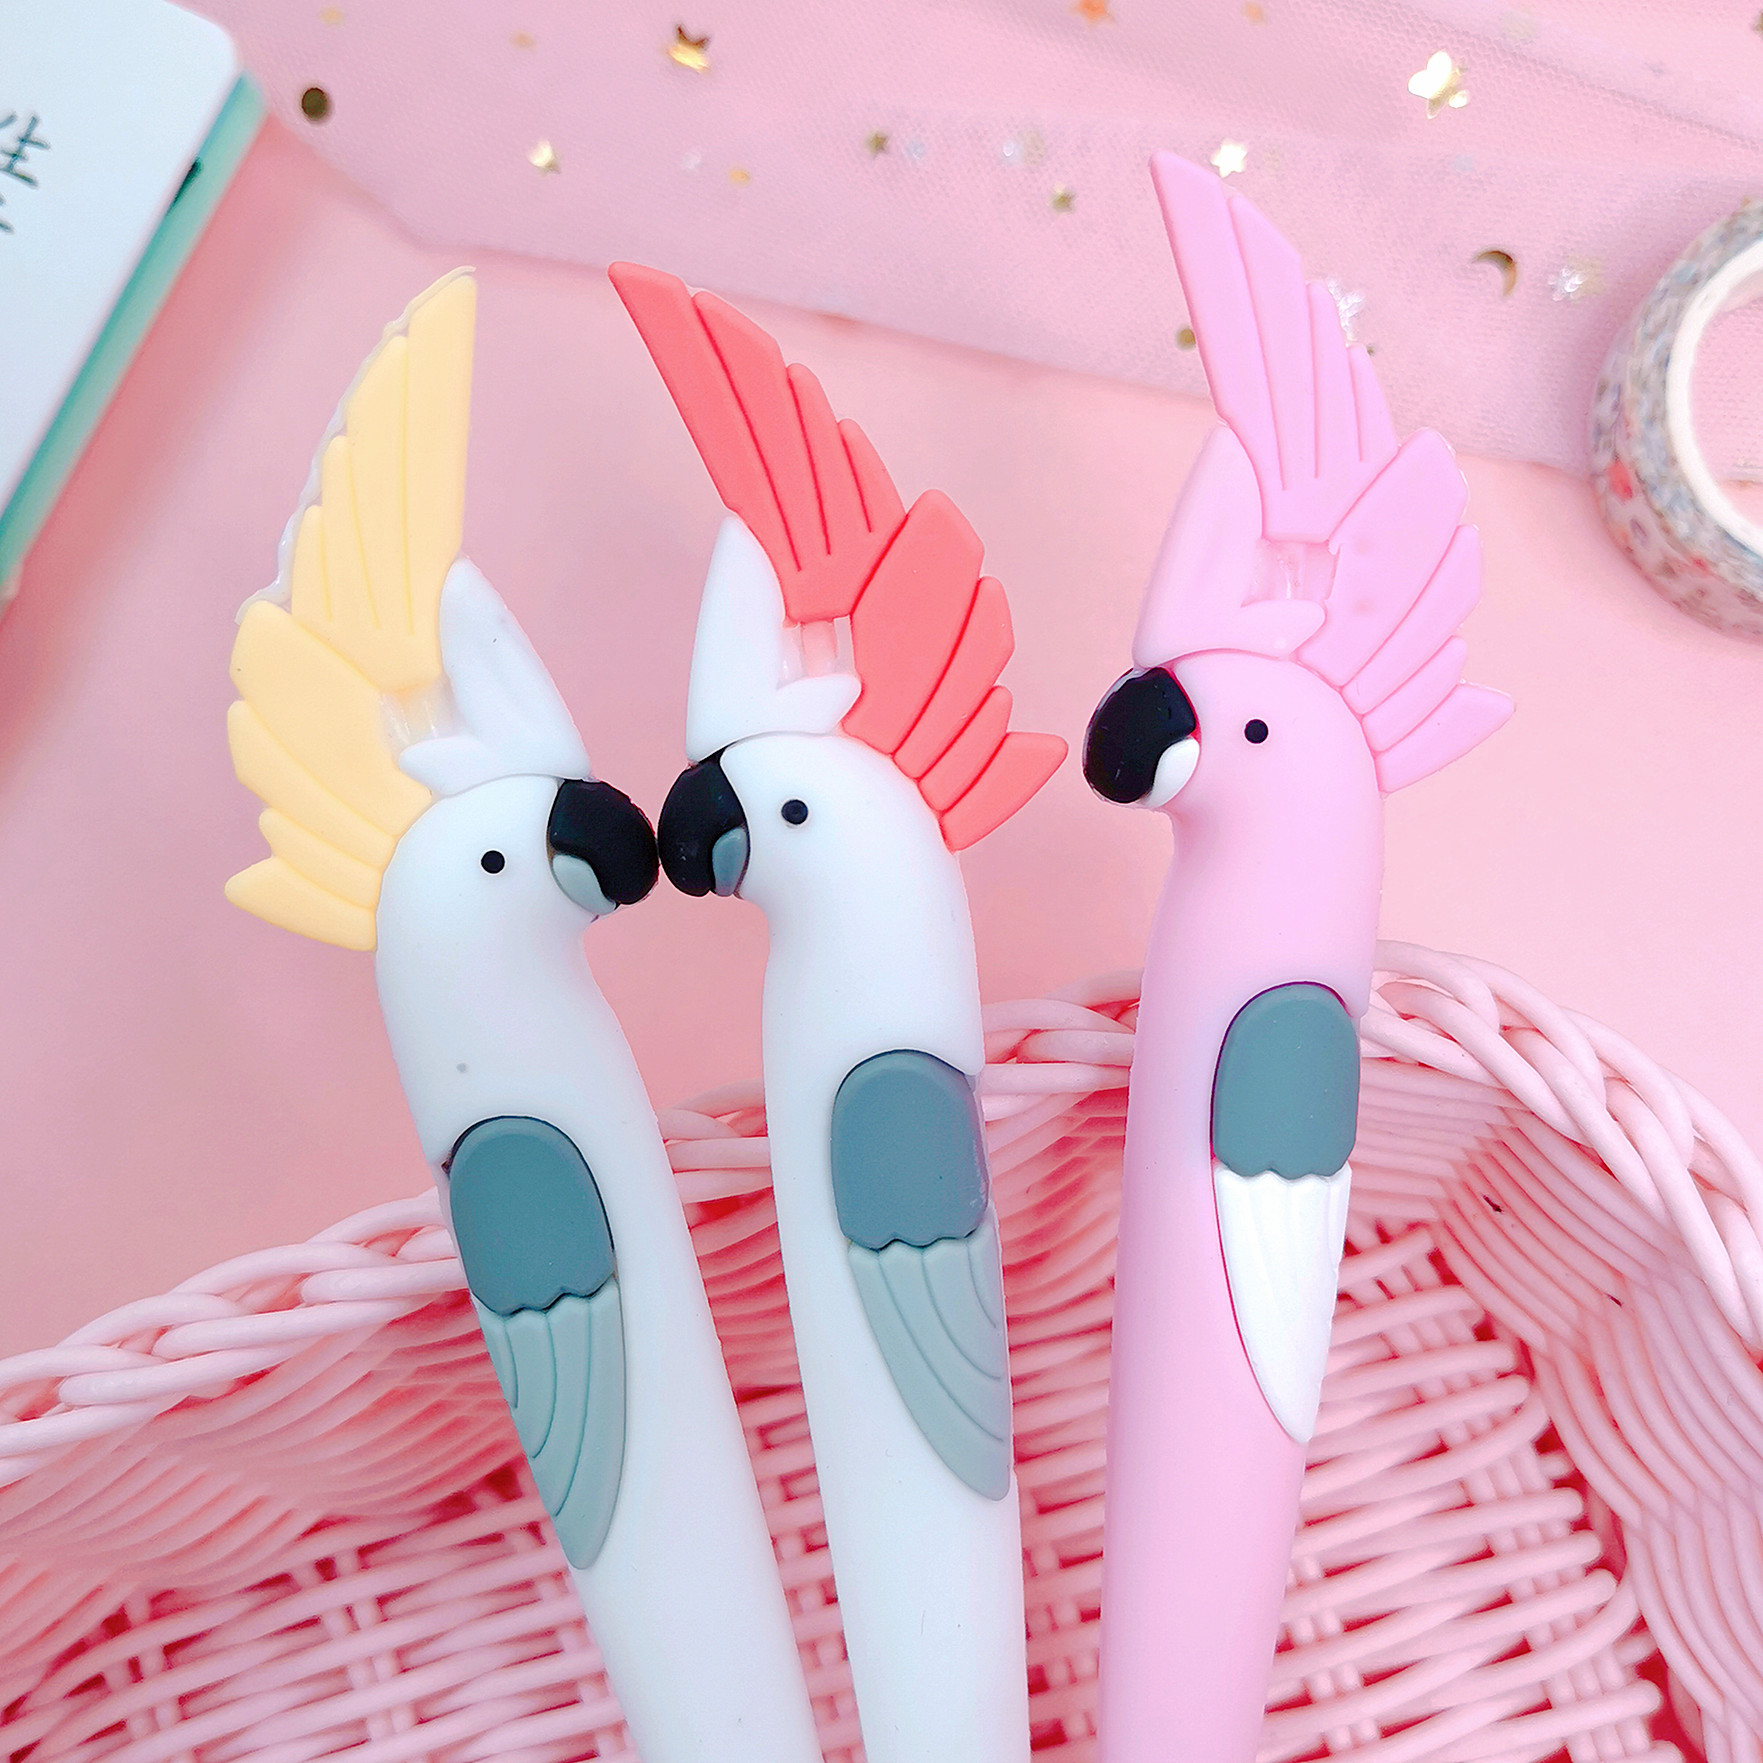 1 Pcs/lot Korean Cute Kawaii Cartoon Parrot Gel Pen 0.55mm Black Ink Writing School Supply Stationery